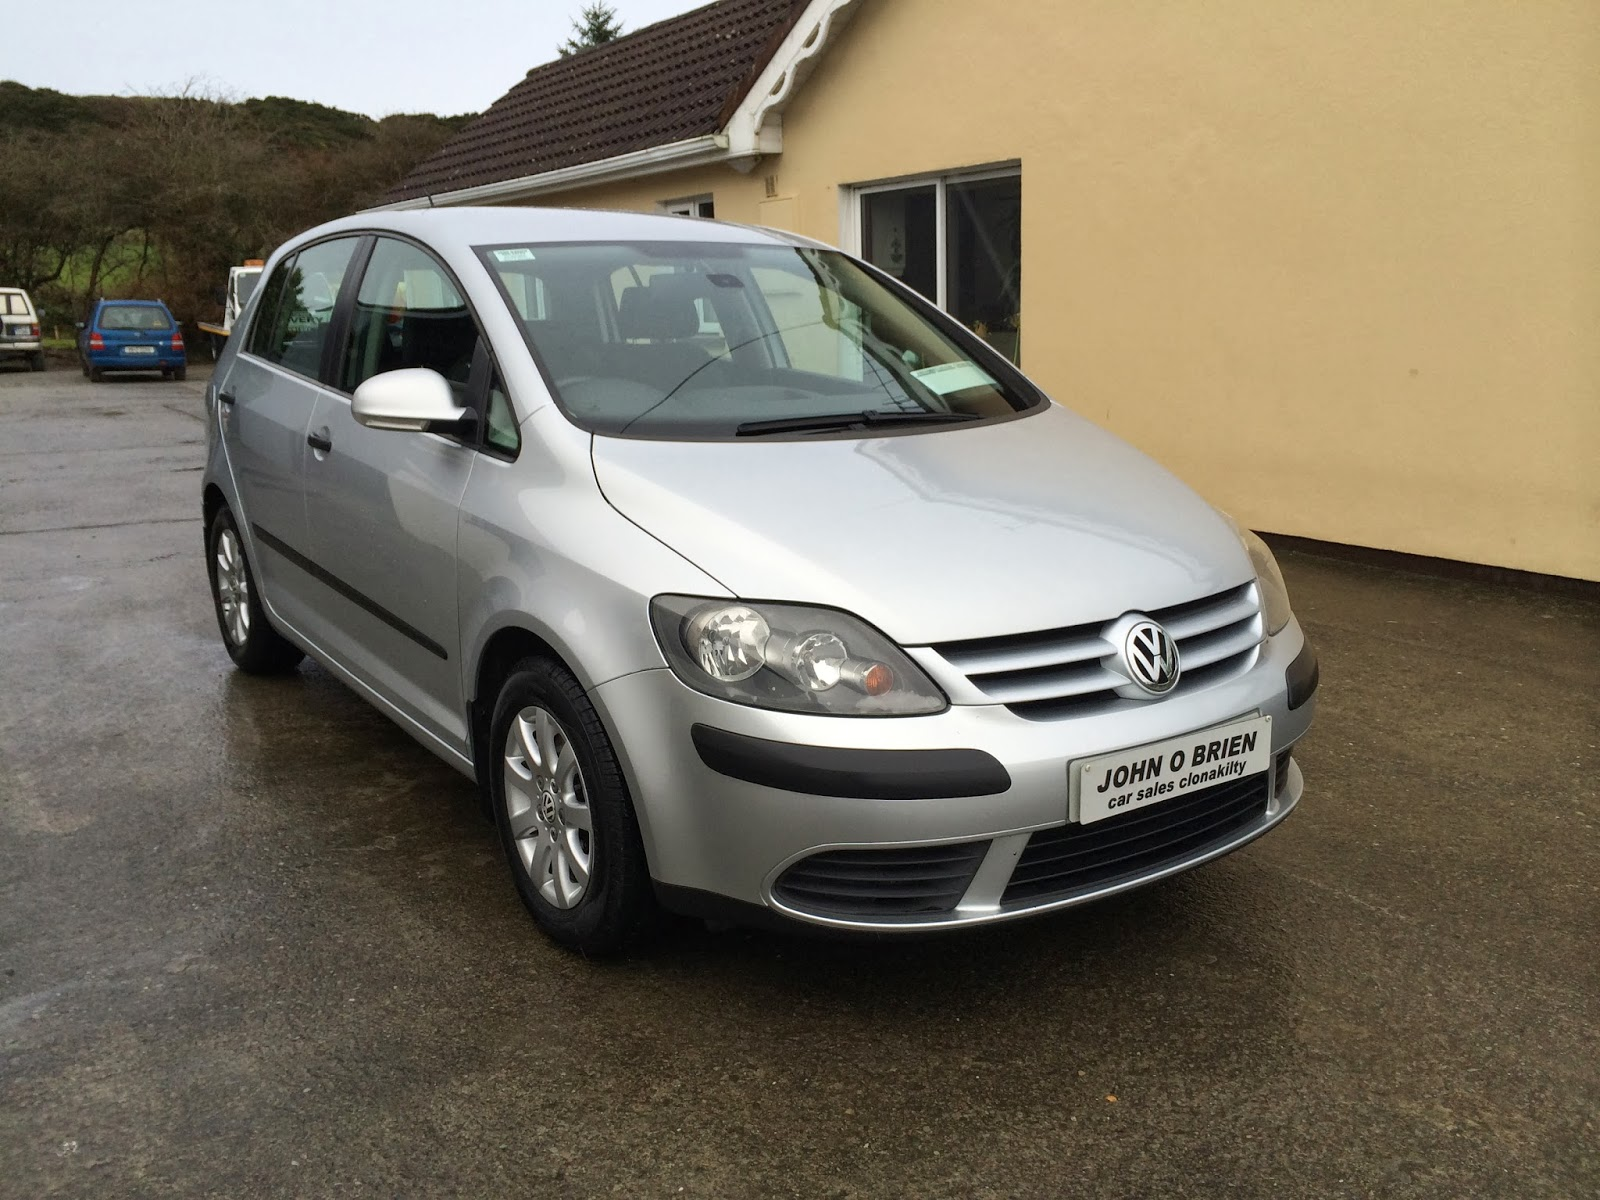 john o brien car sales clonakilty 2005 volkswagen golf. Black Bedroom Furniture Sets. Home Design Ideas